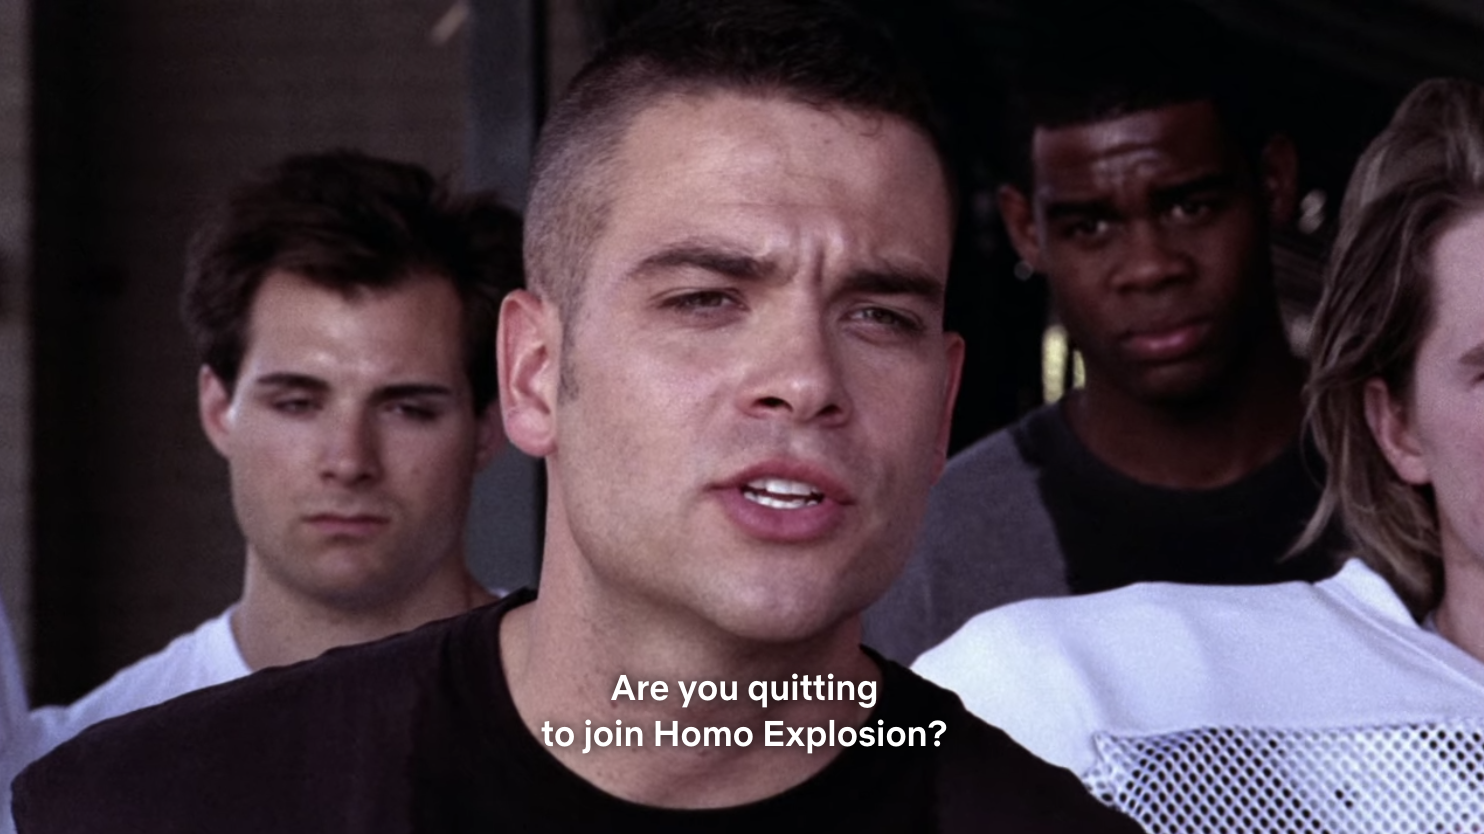 Puck asking Finn if he's quitting football to join Homo Explosion